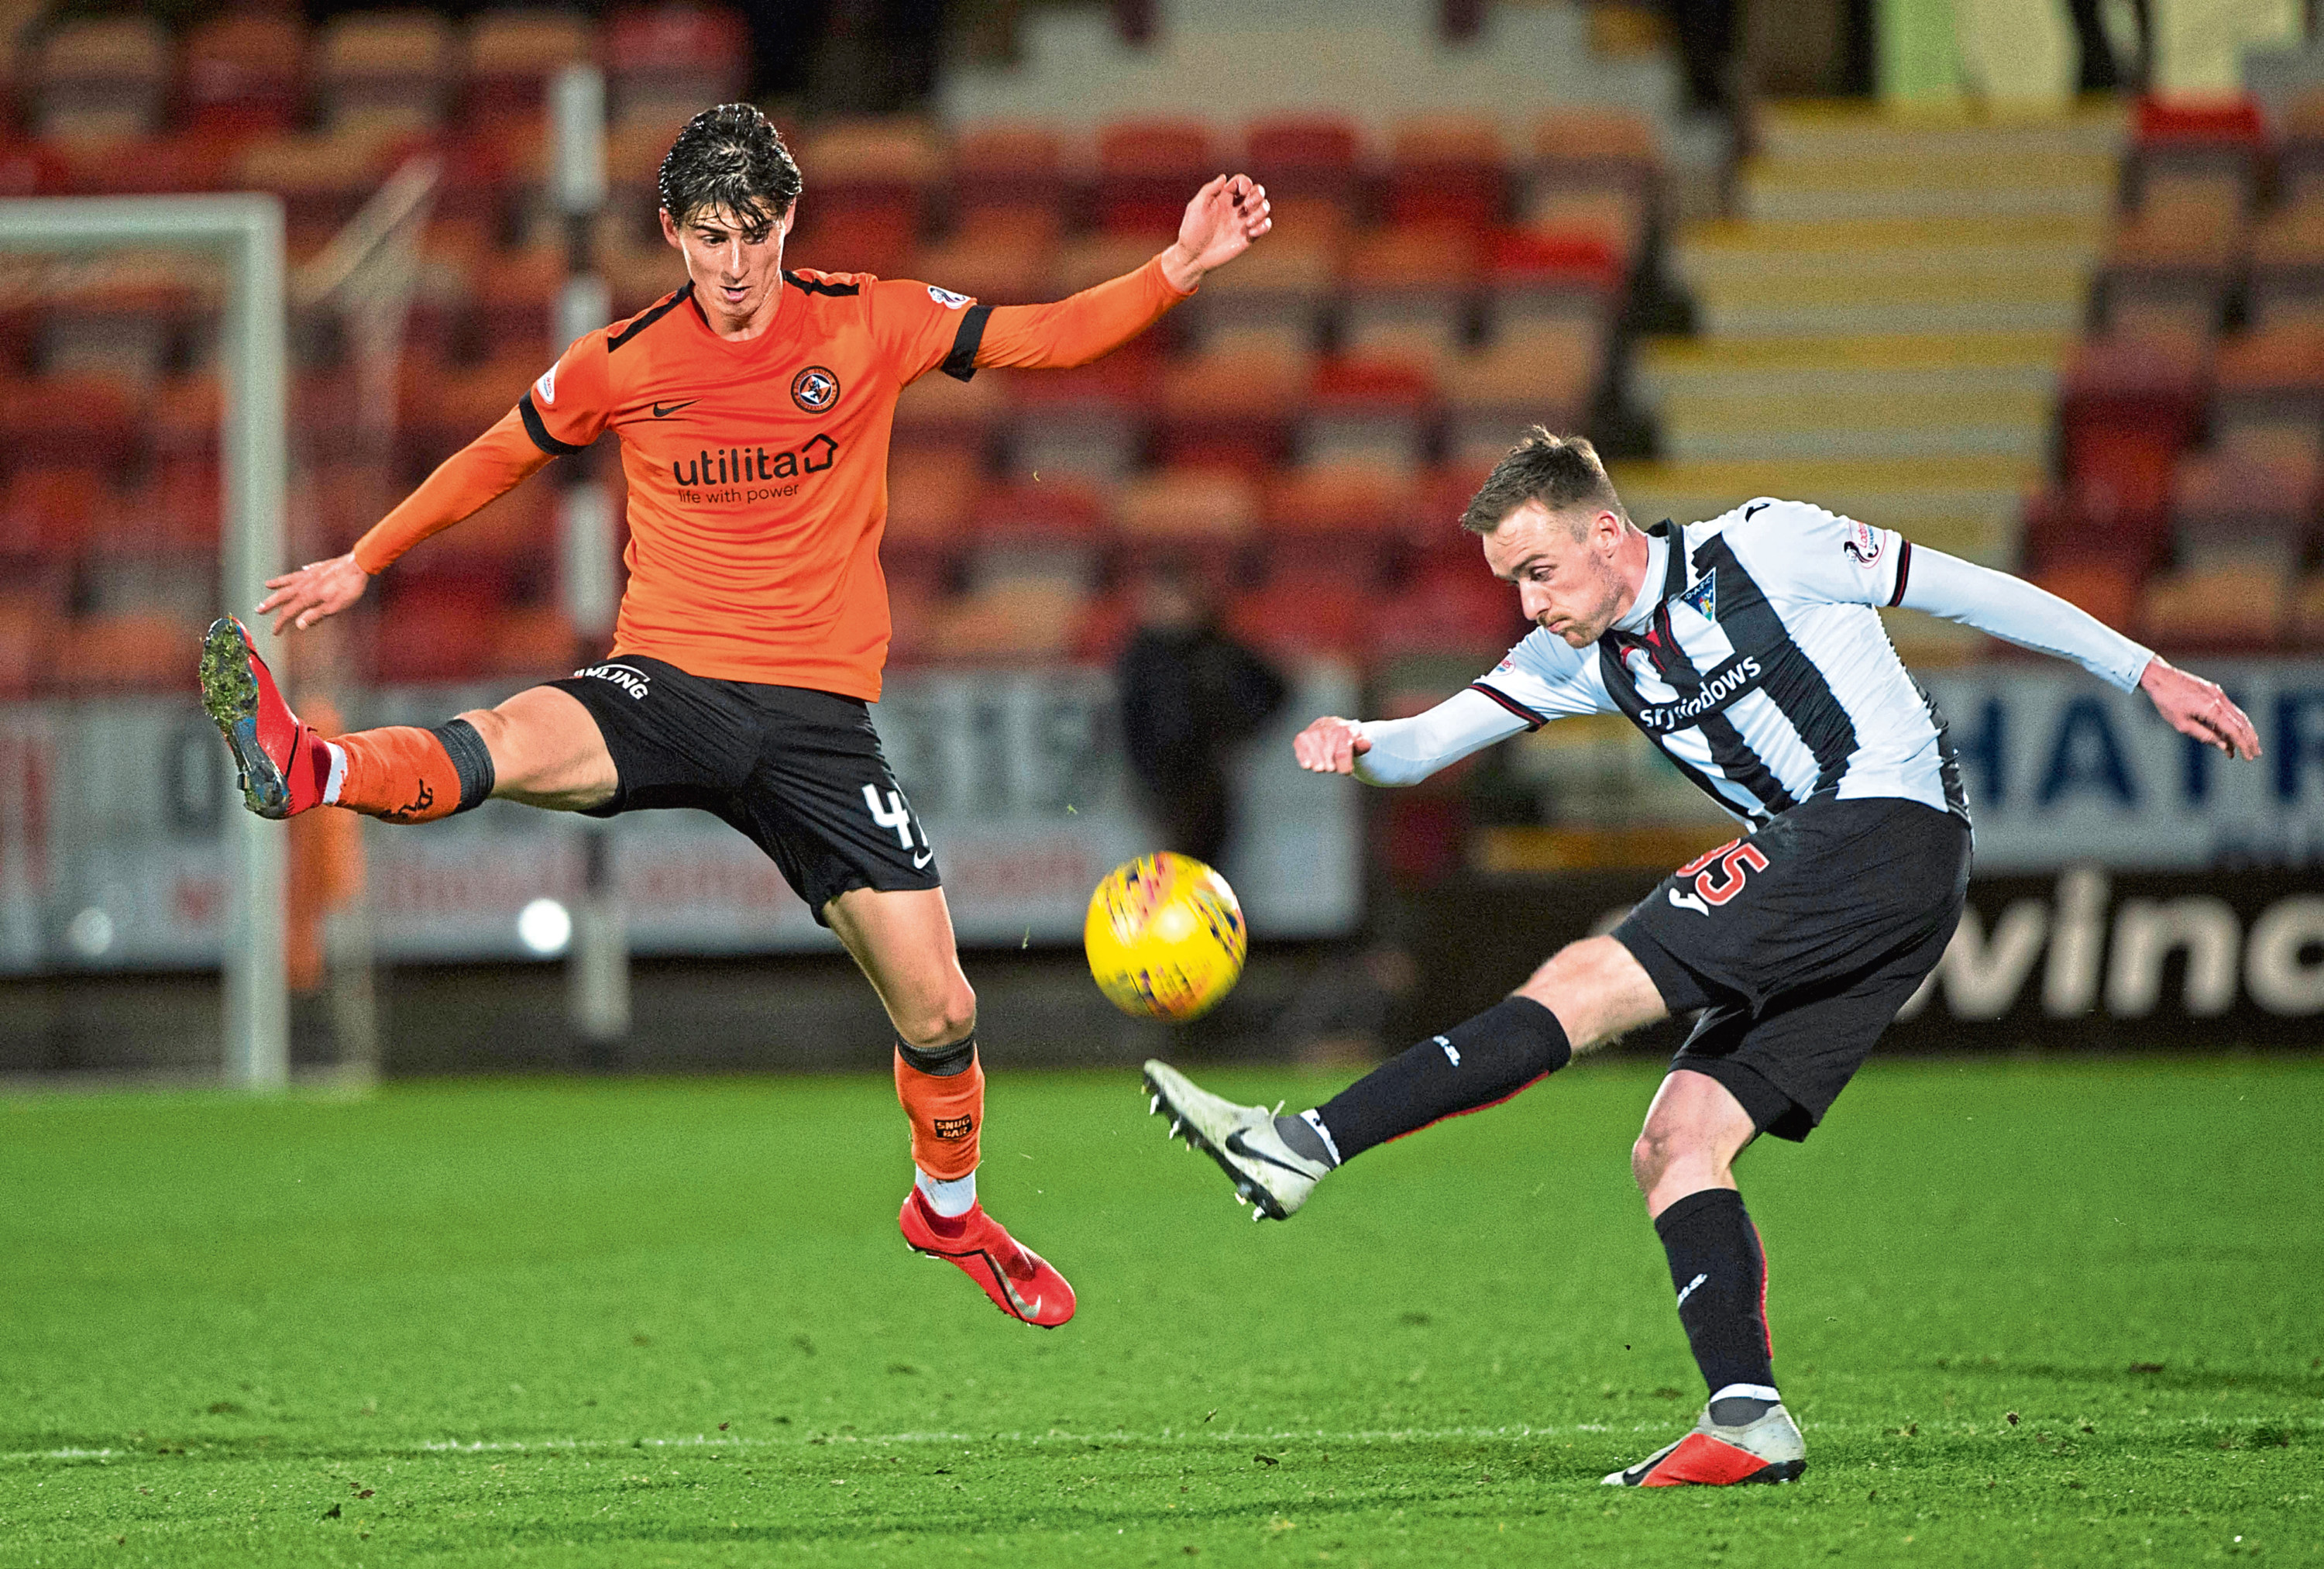 Dundee United midfielder Ian Harkes is targeting five wins in a row to end the Championship season as they try to catch leaders Ross County